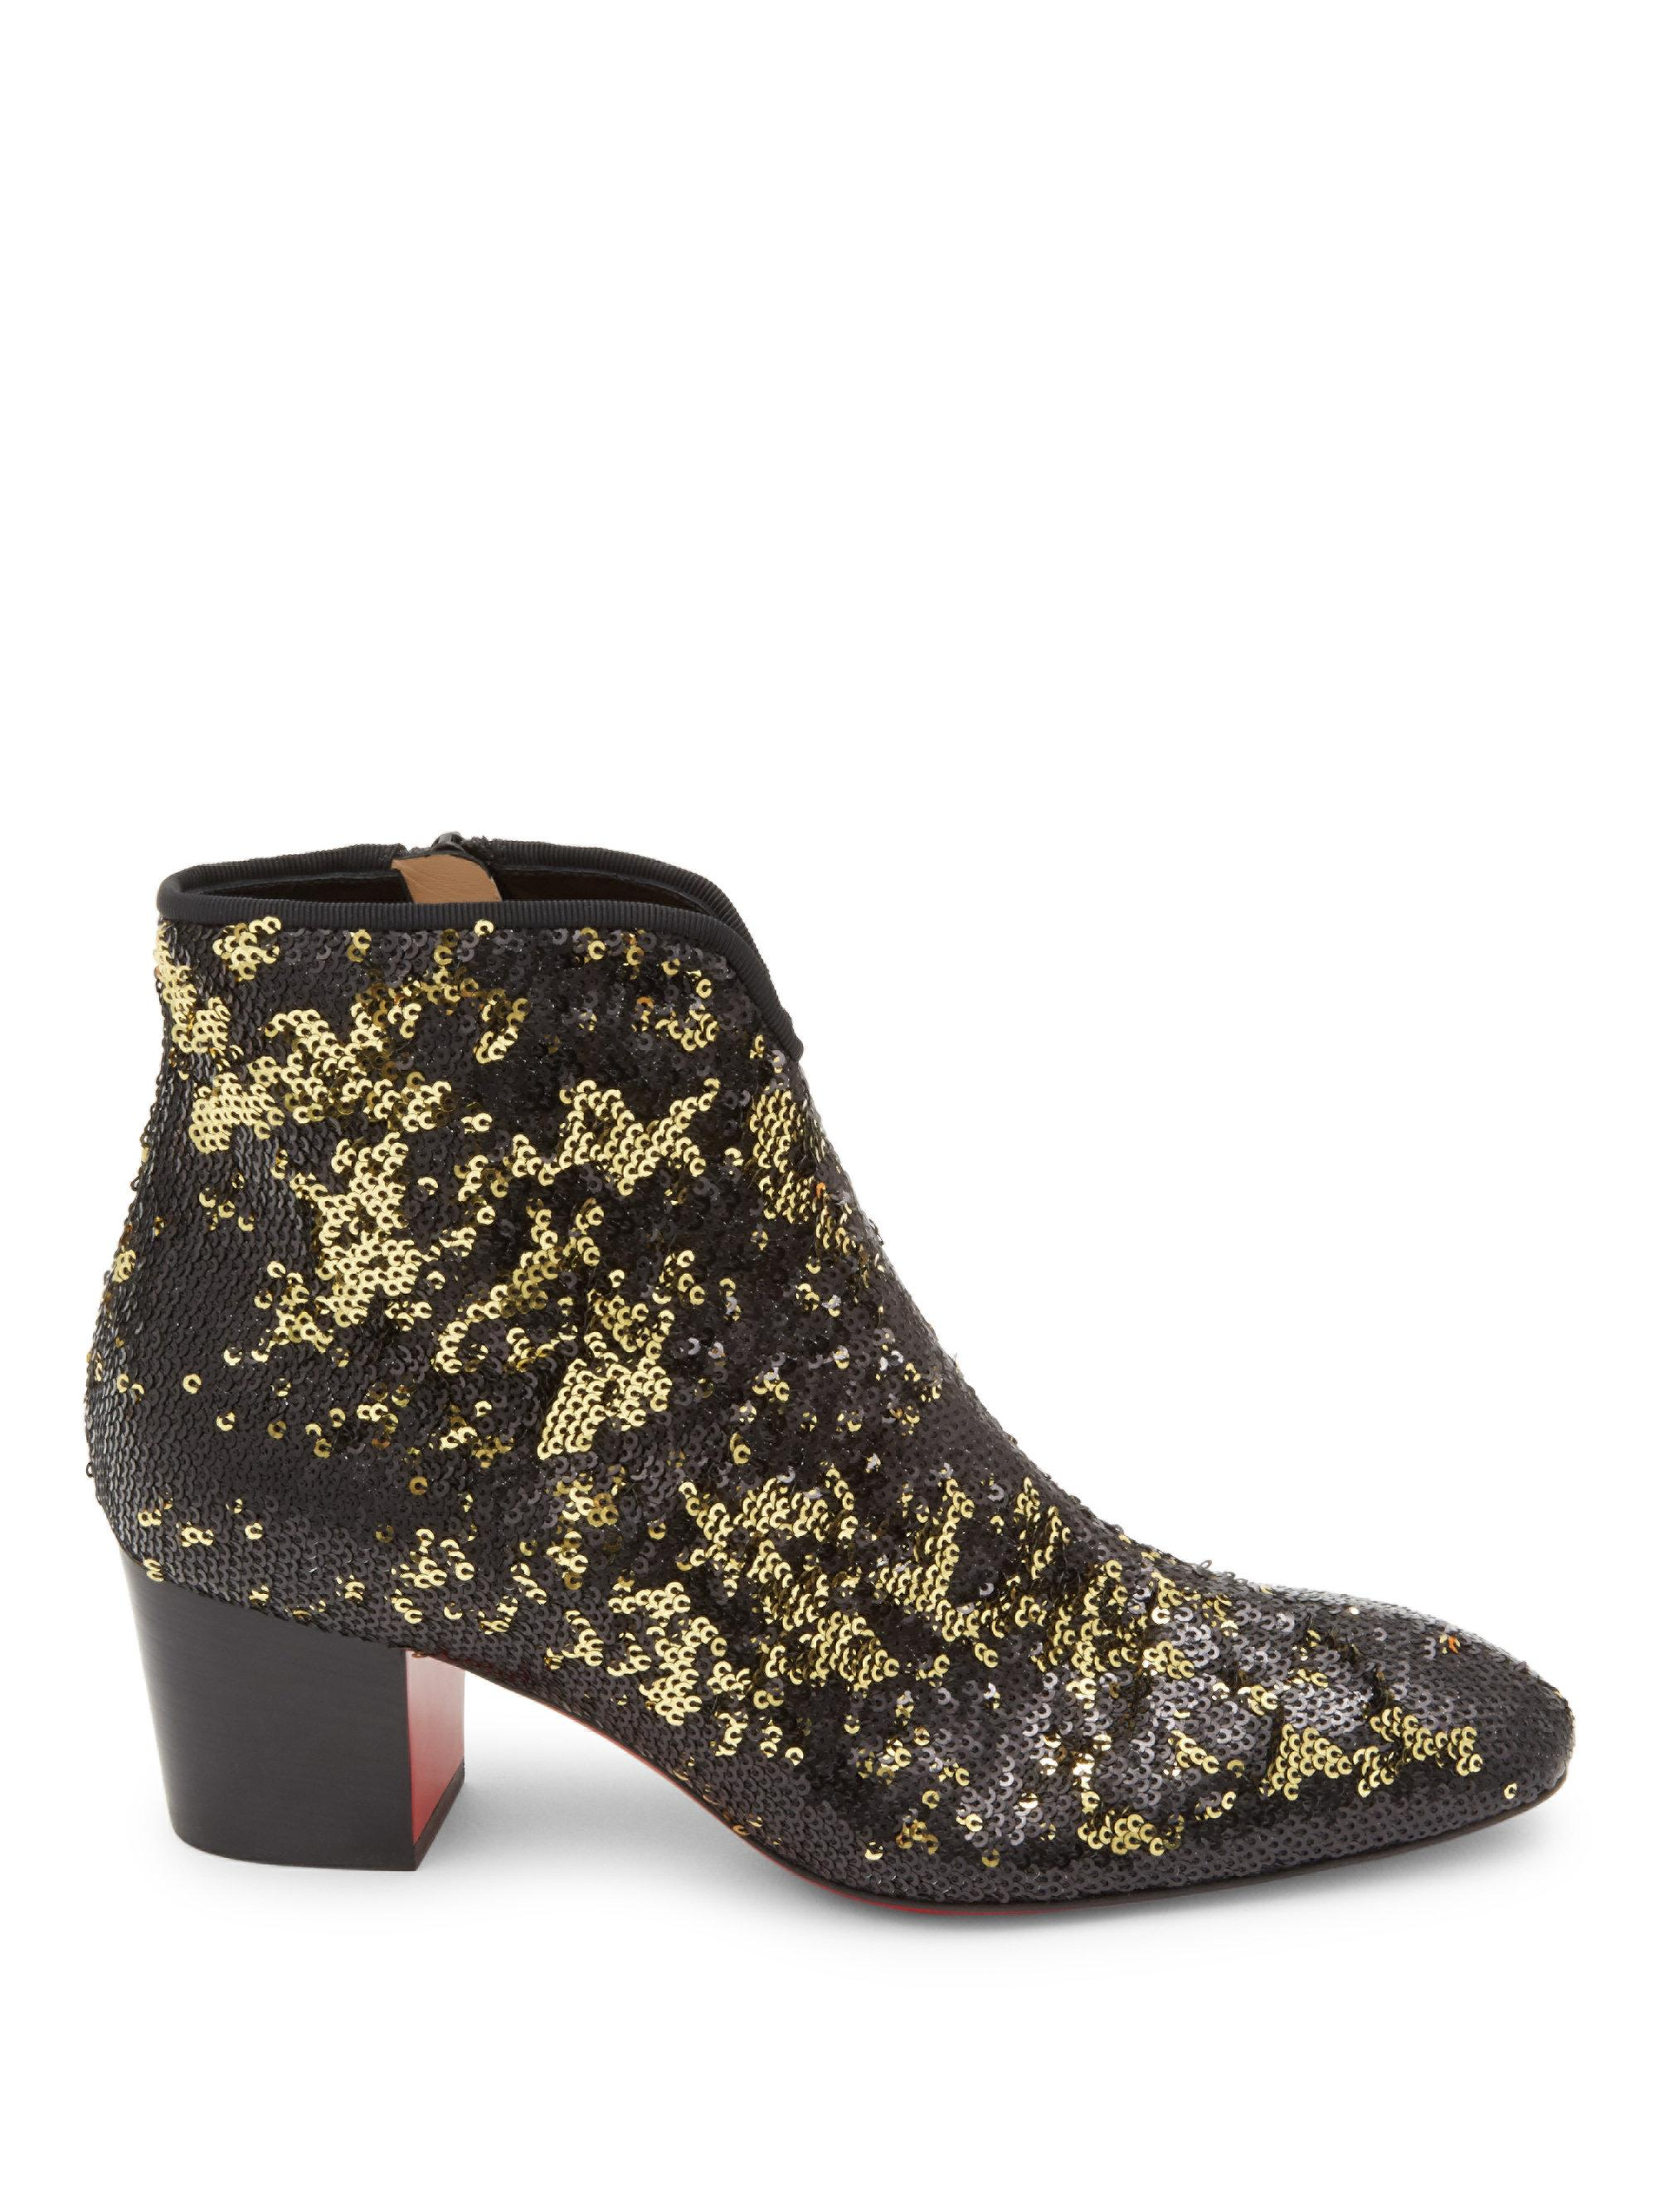 Christian Louboutin Suede Sequin-Embellished Booties discount new wholesale price online free shipping get authentic low shipping fee for sale discount footlocker finishline D7kTP